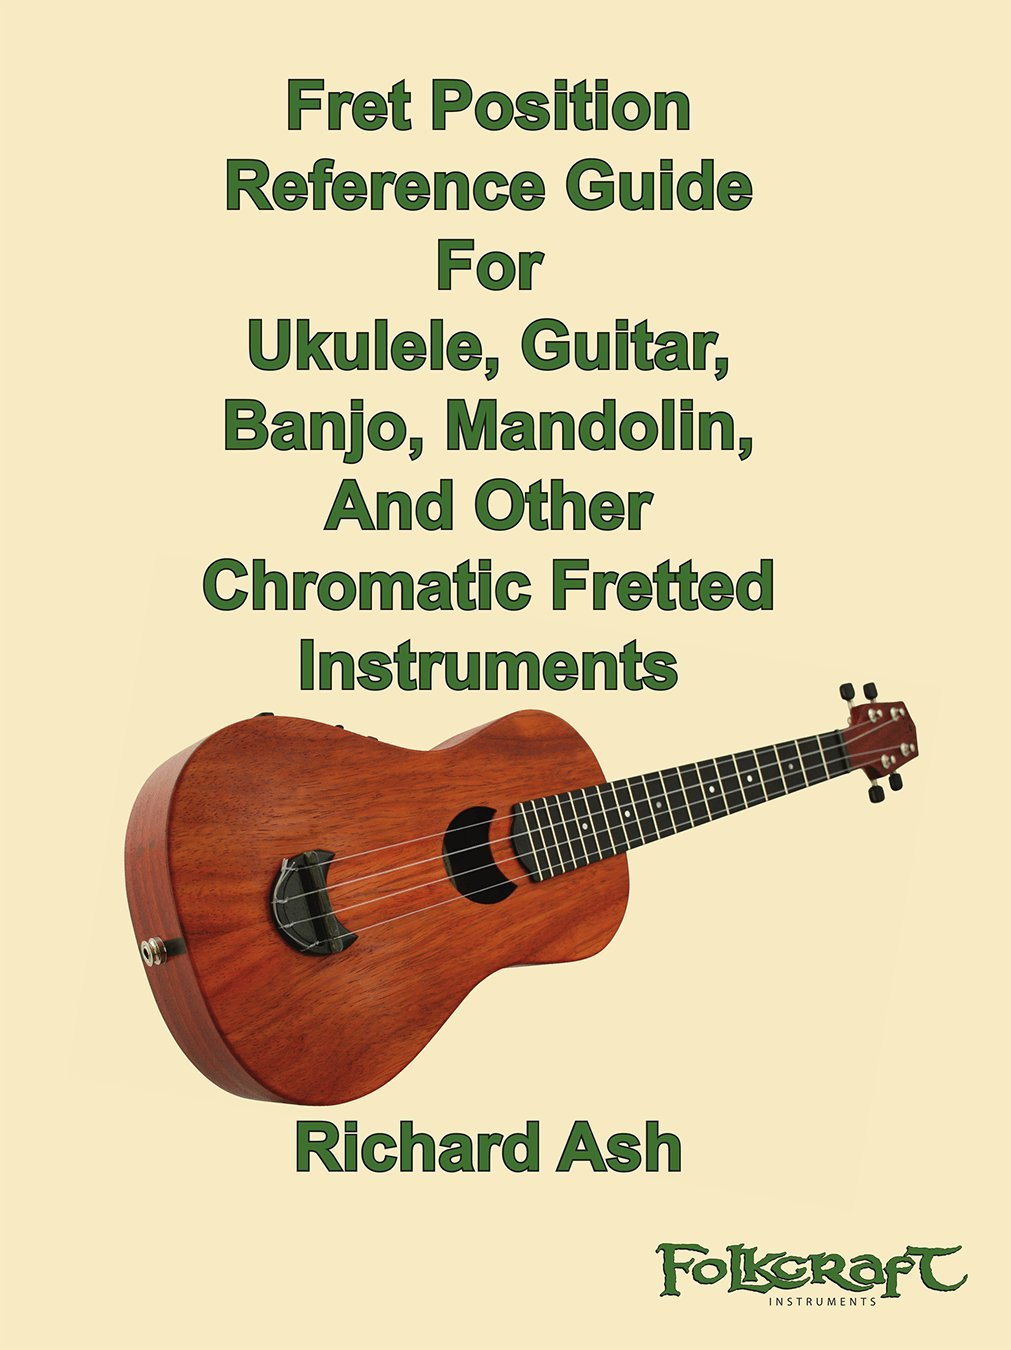 Fret Position Reference Guide For Ukulele, Guitar, Banjo, Mandolin, And Other Chromatic Fretted Instruments